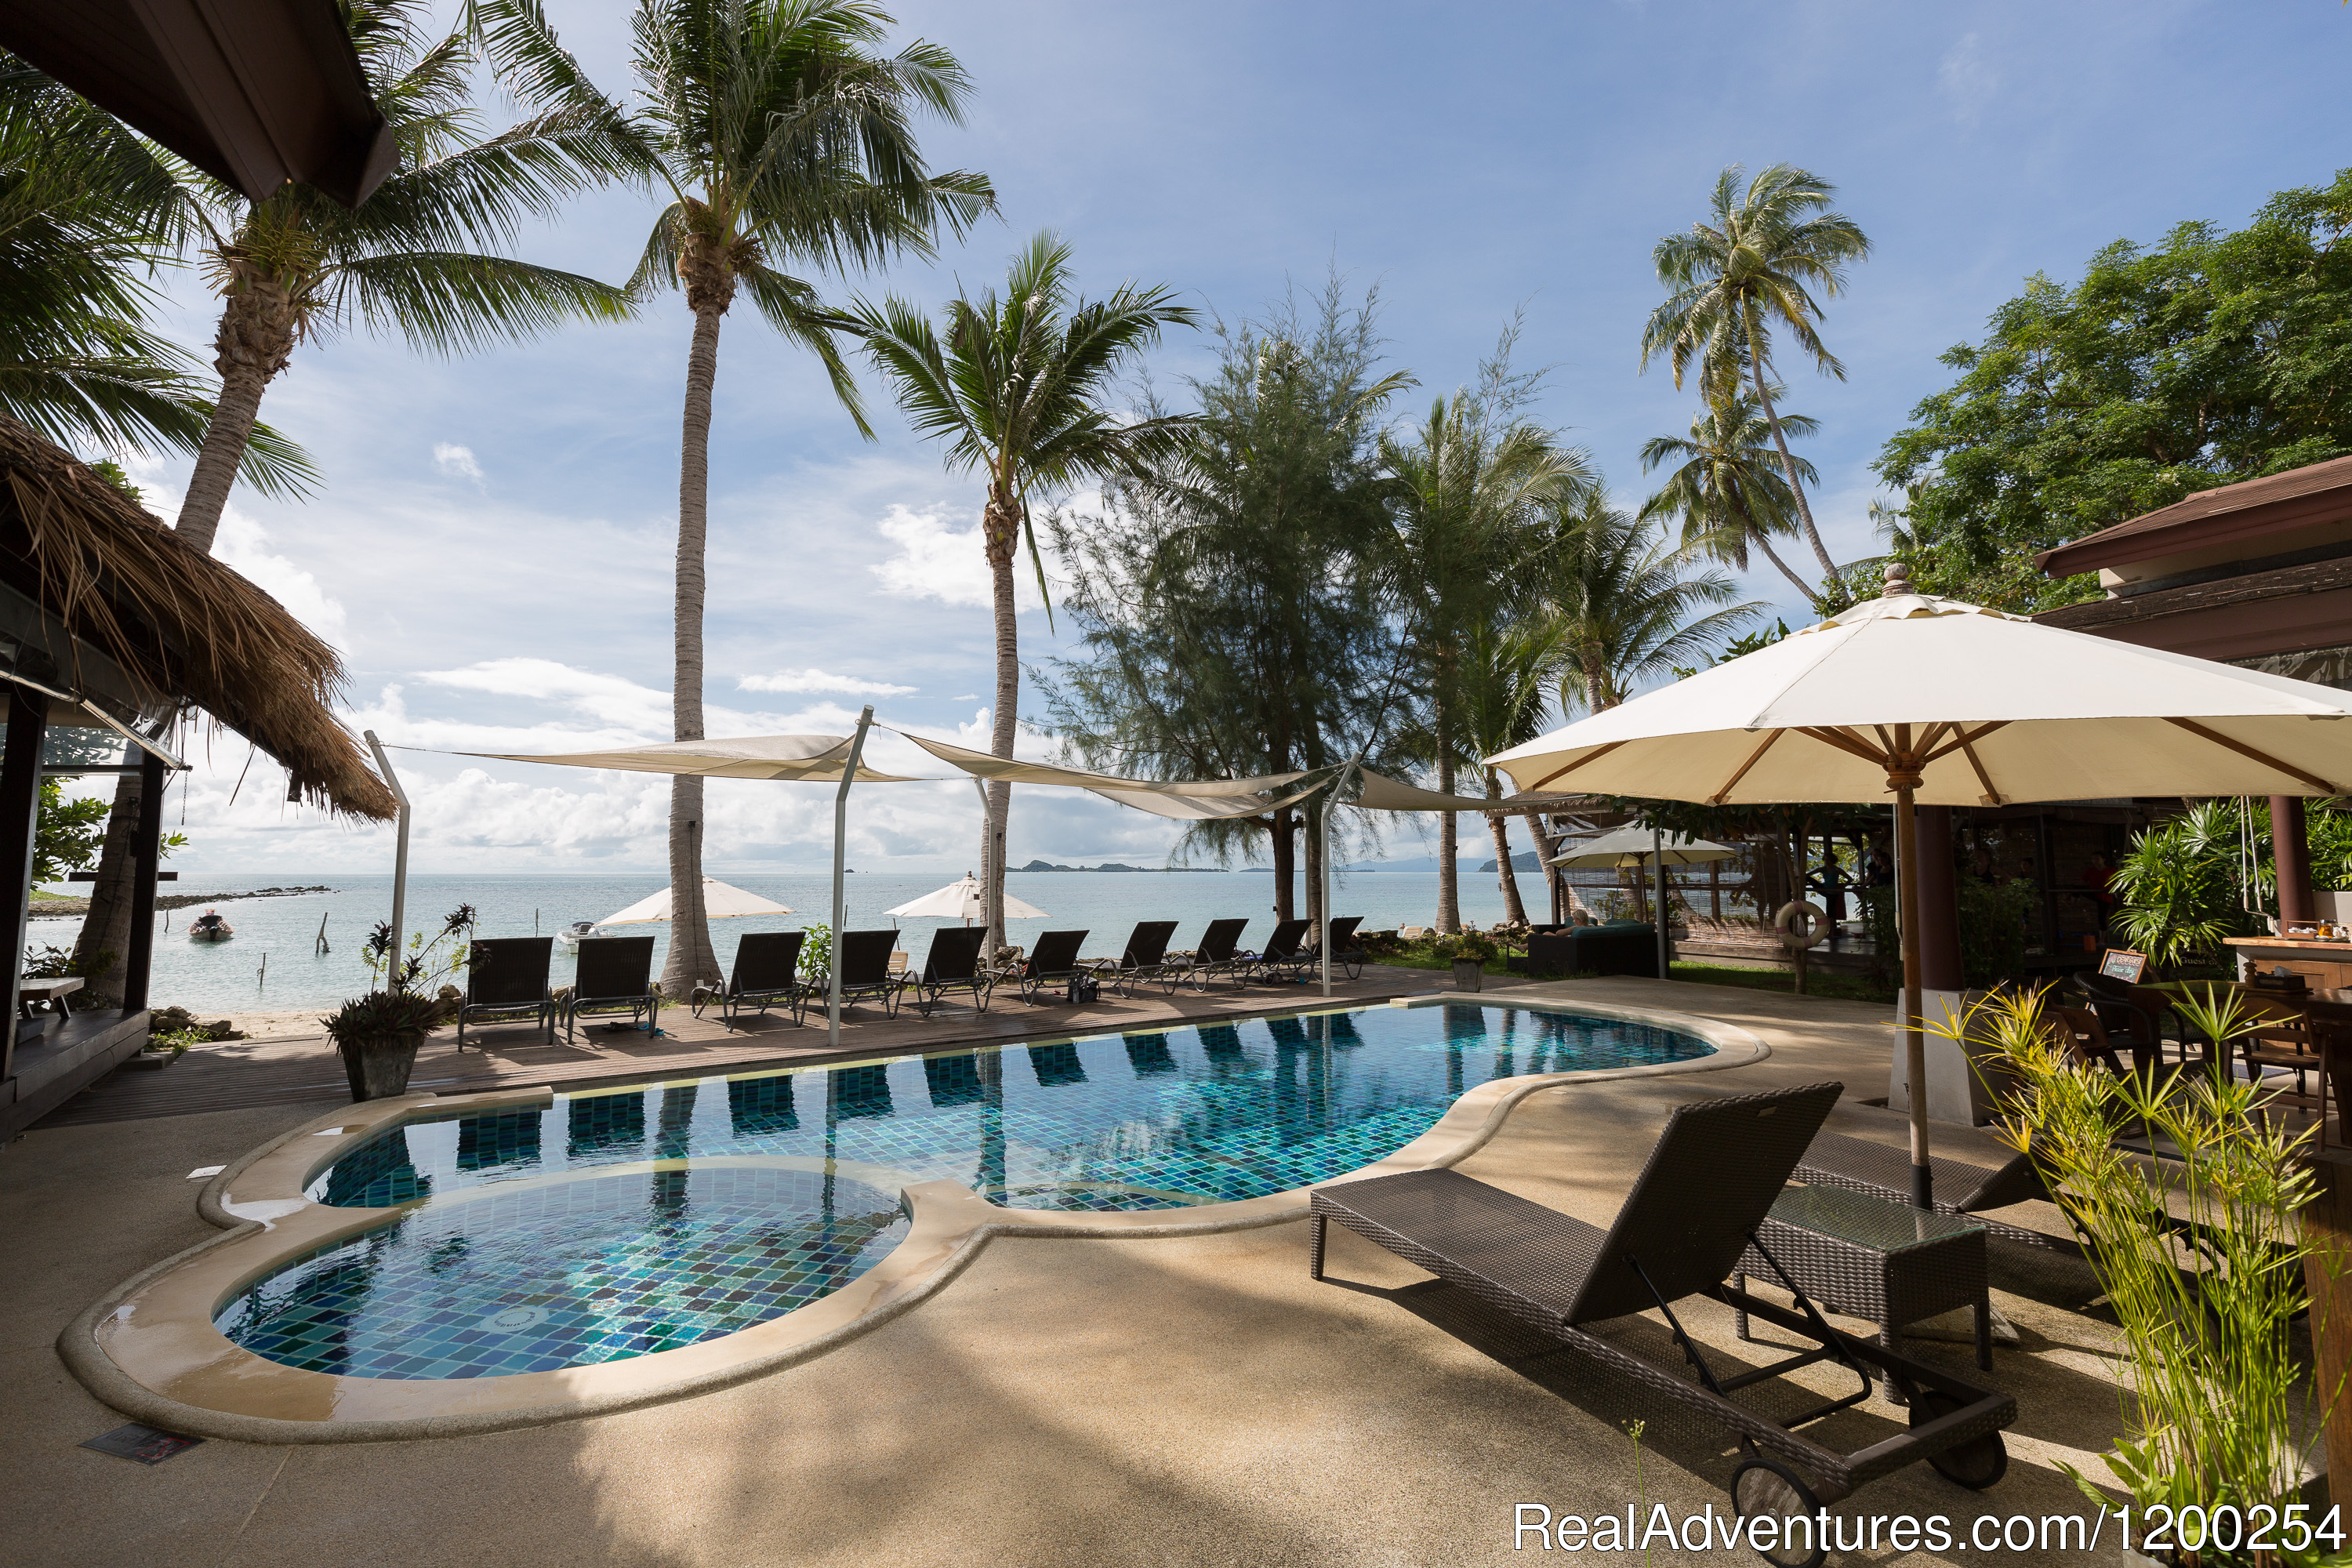 Samahita Retreat:  Yoga, Fitness, Detox Koh Samui, Thailand Yoga